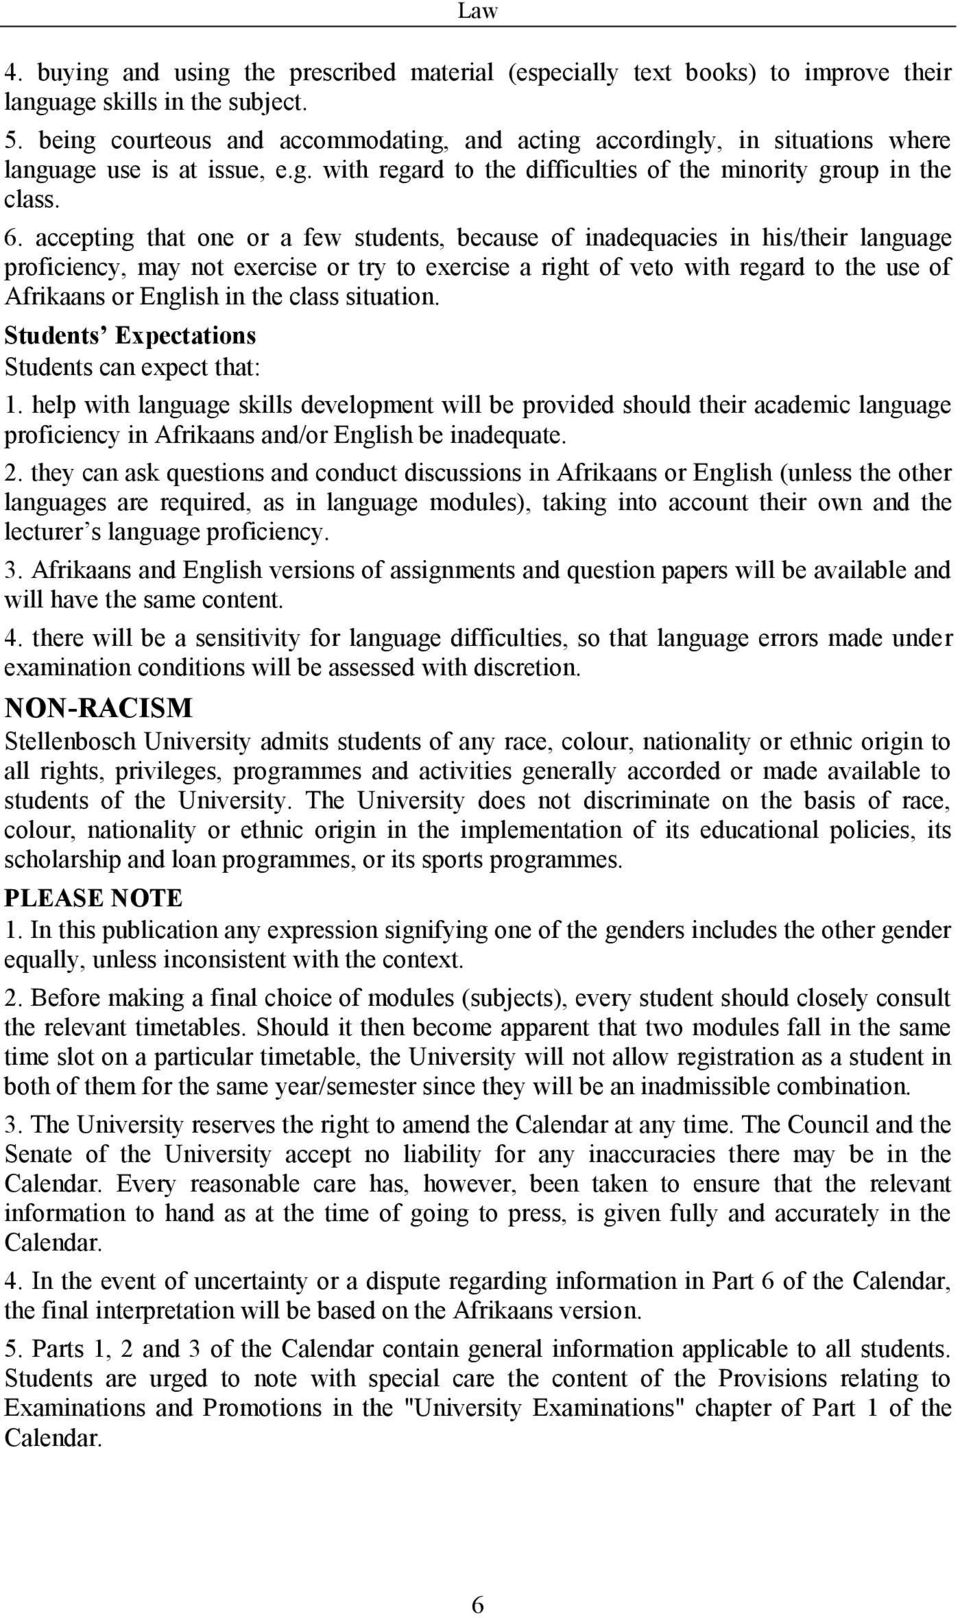 accepting that one or a few students, because of inadequacies in his/their language proficiency, may not exercise or try to exercise a right of veto with regard to the use of Afrikaans or English in